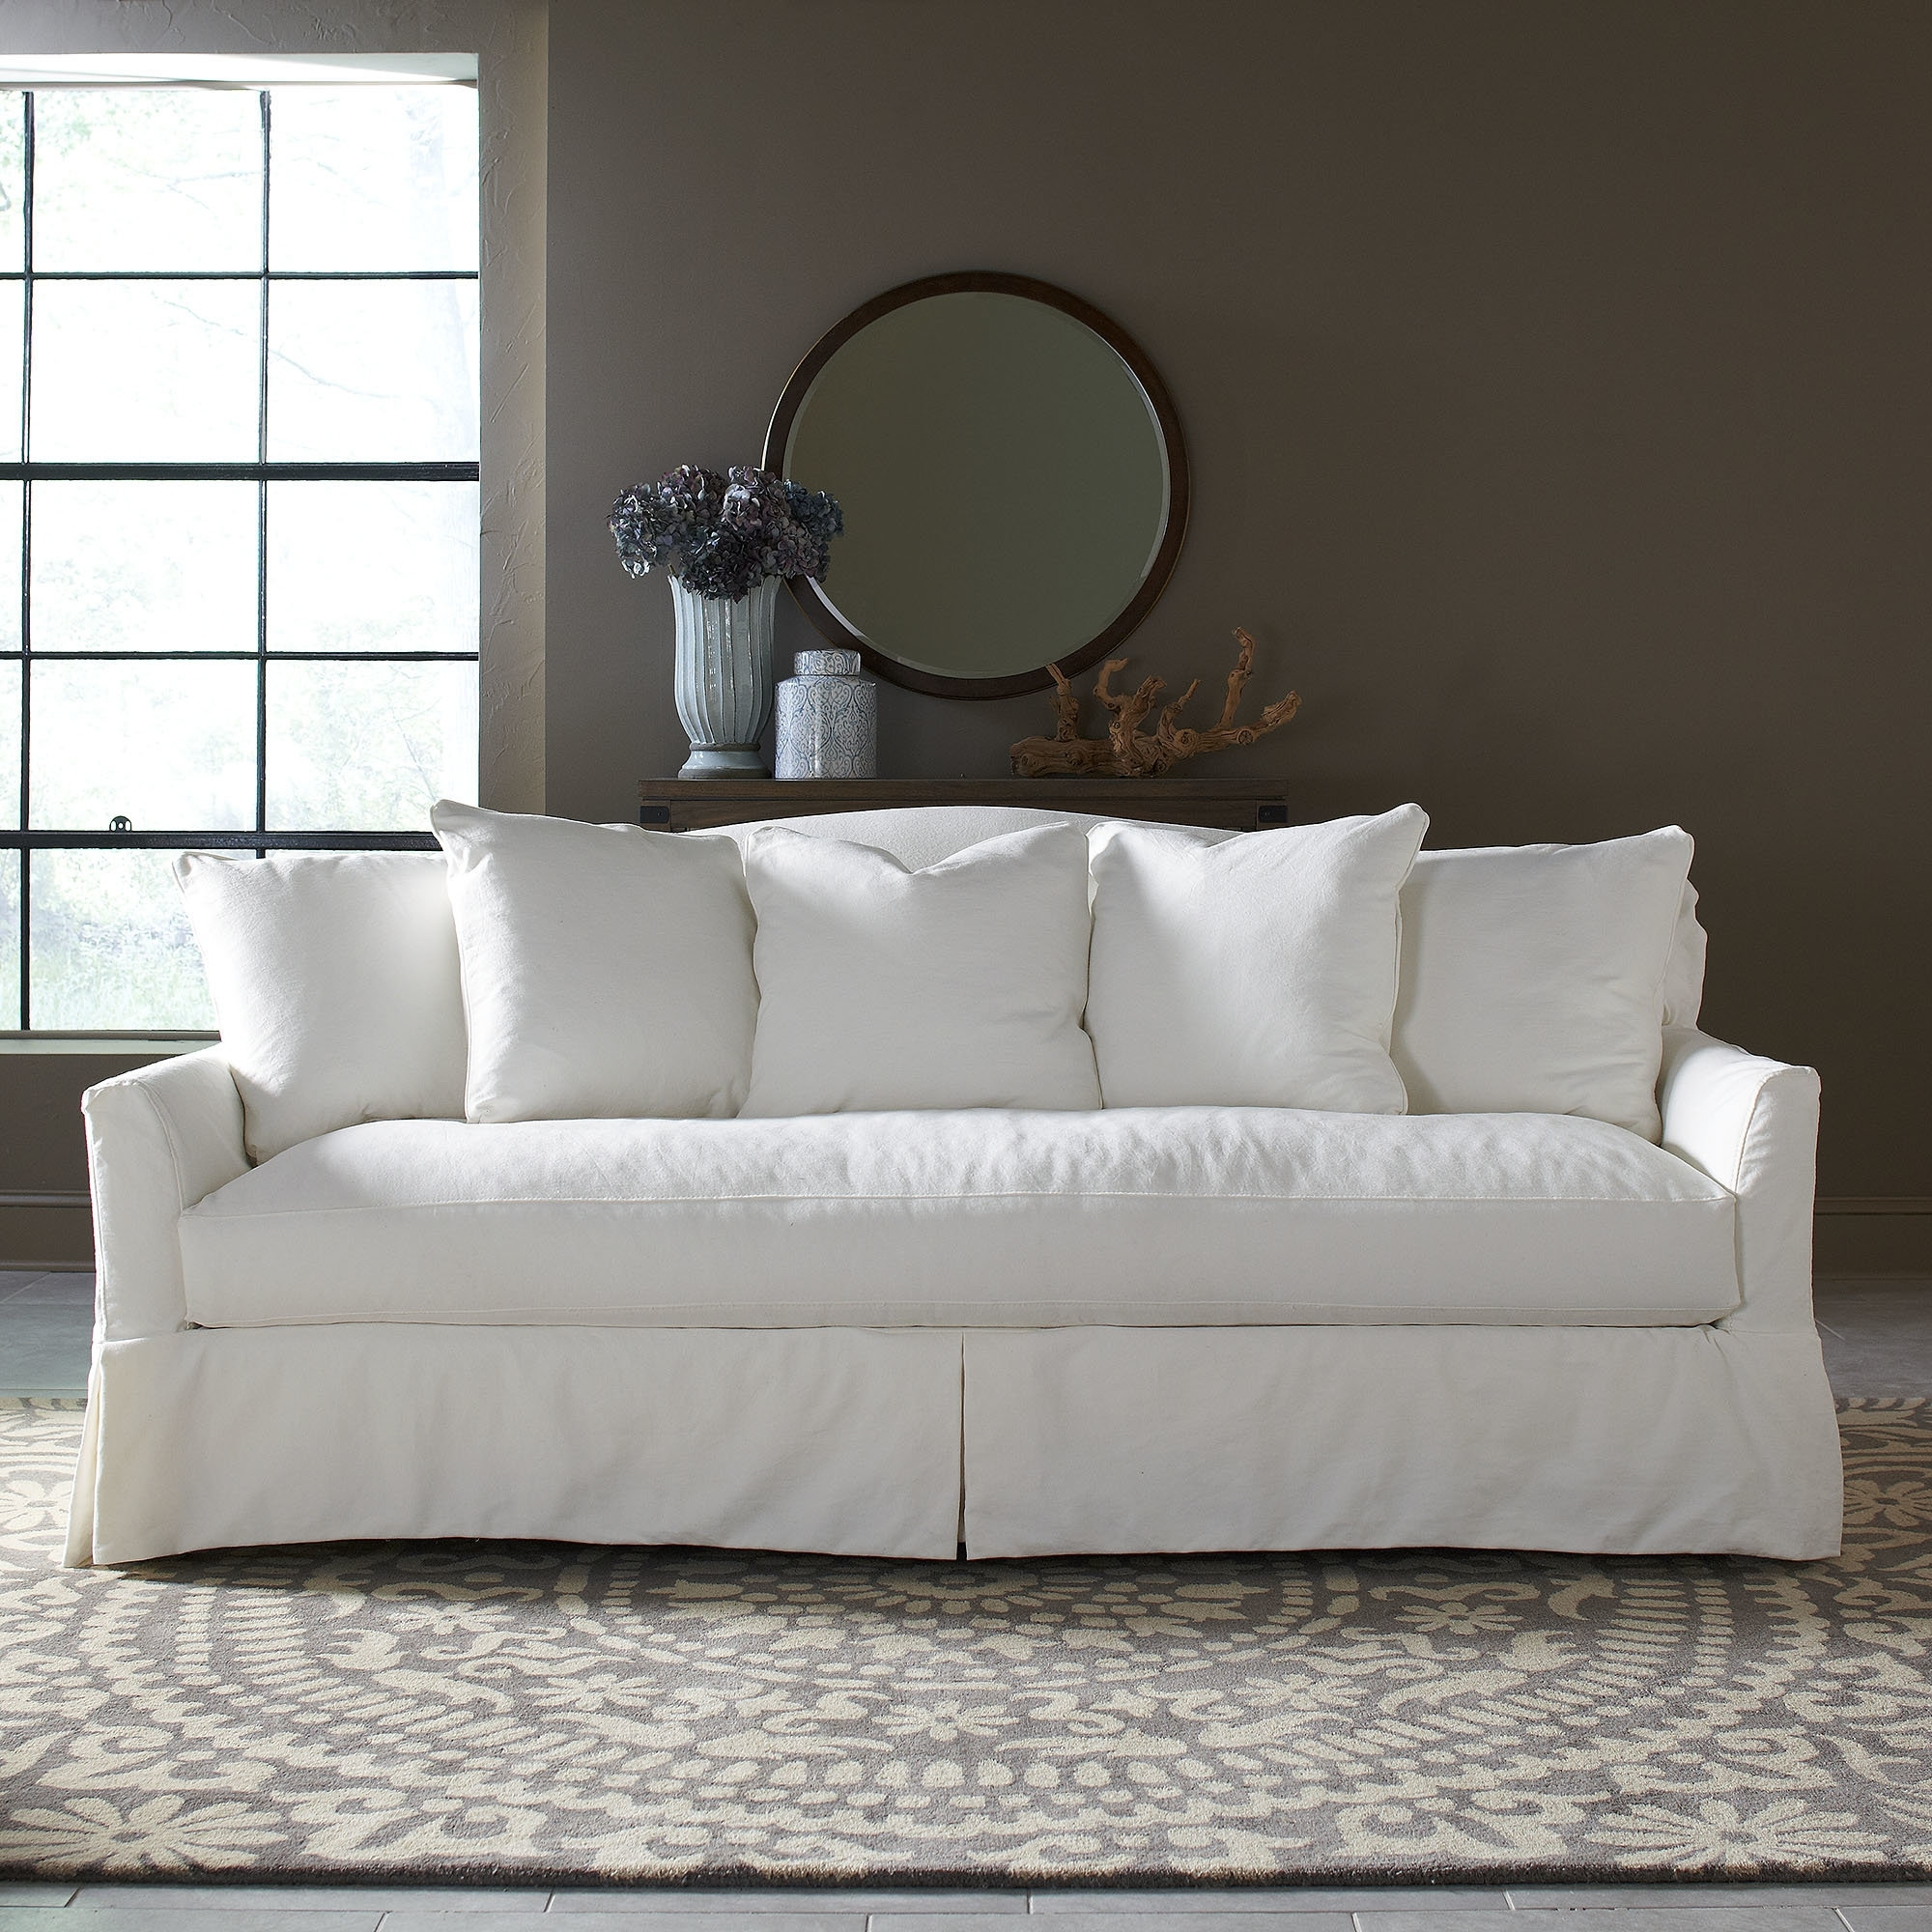 Wayfair Regarding Sofas With Removable Covers (View 17 of 20)